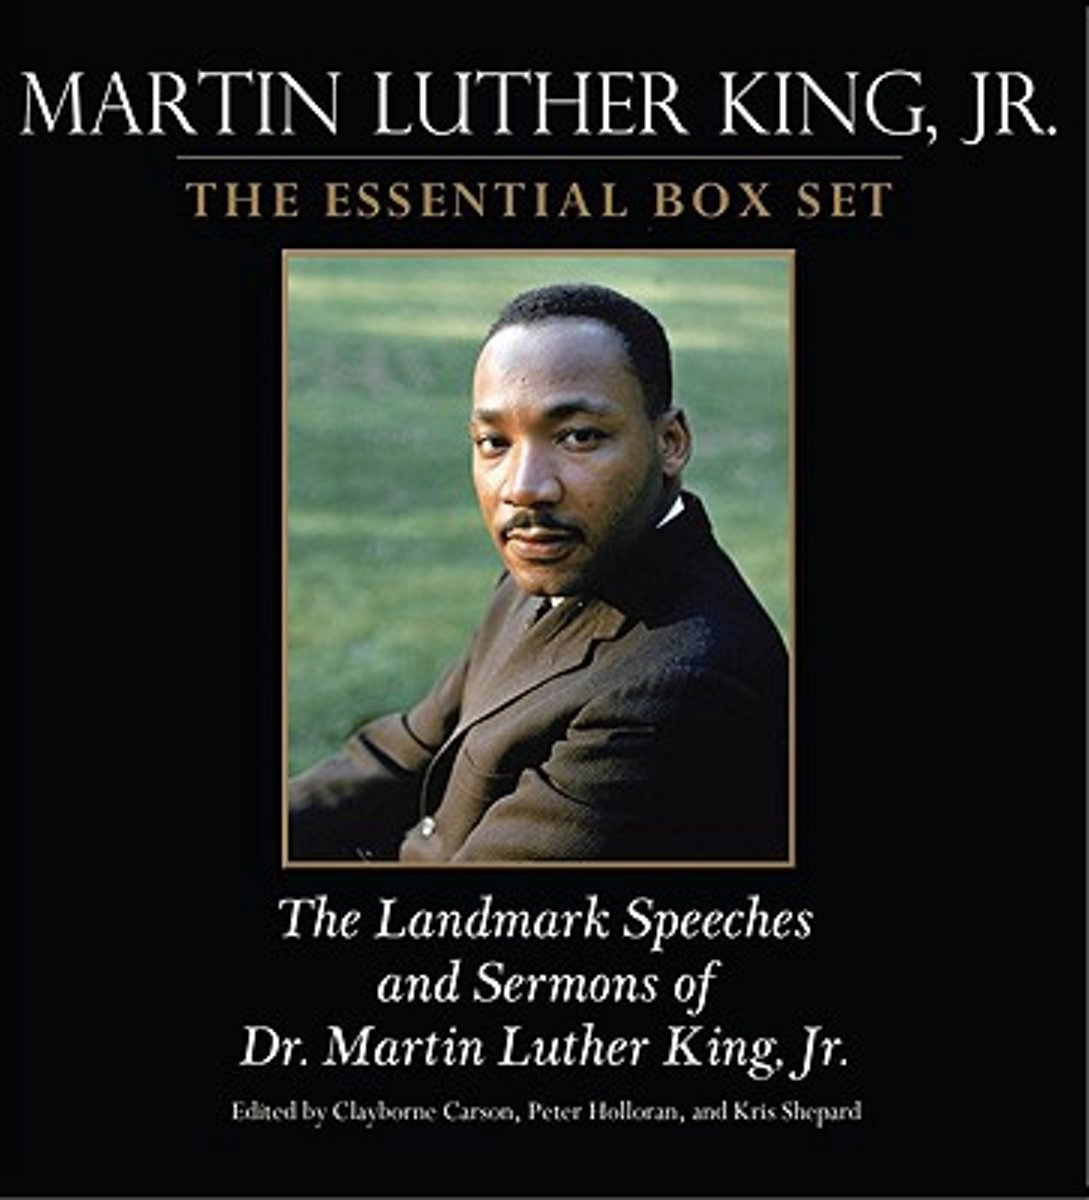 Martin Luther King, JR. The Essential Box Set